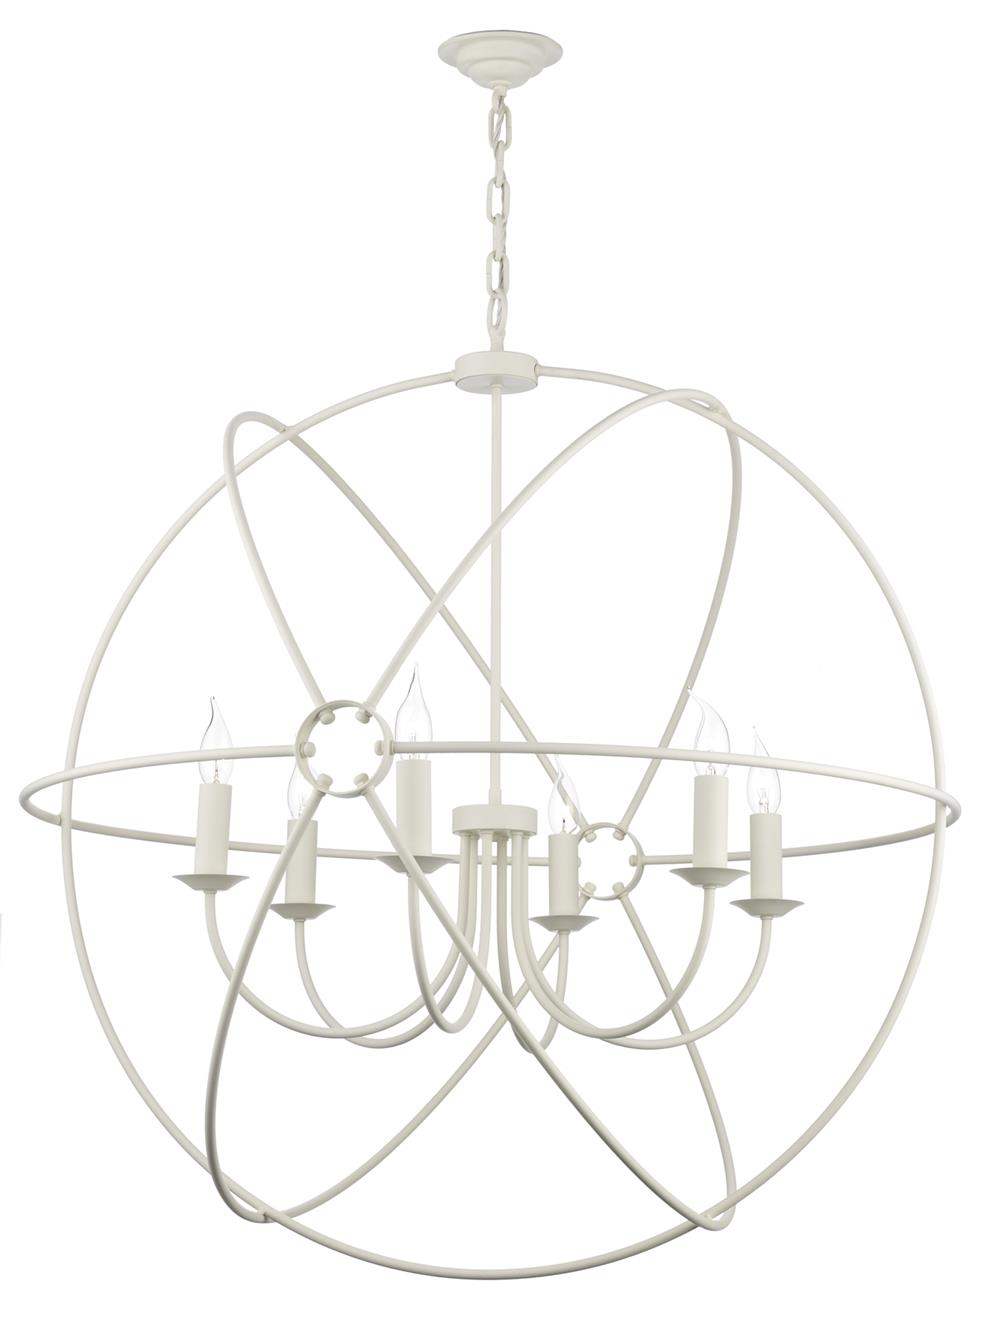 David Hunt Lighting ORB0633 Orb 6 Light Pendant in Cream Finish